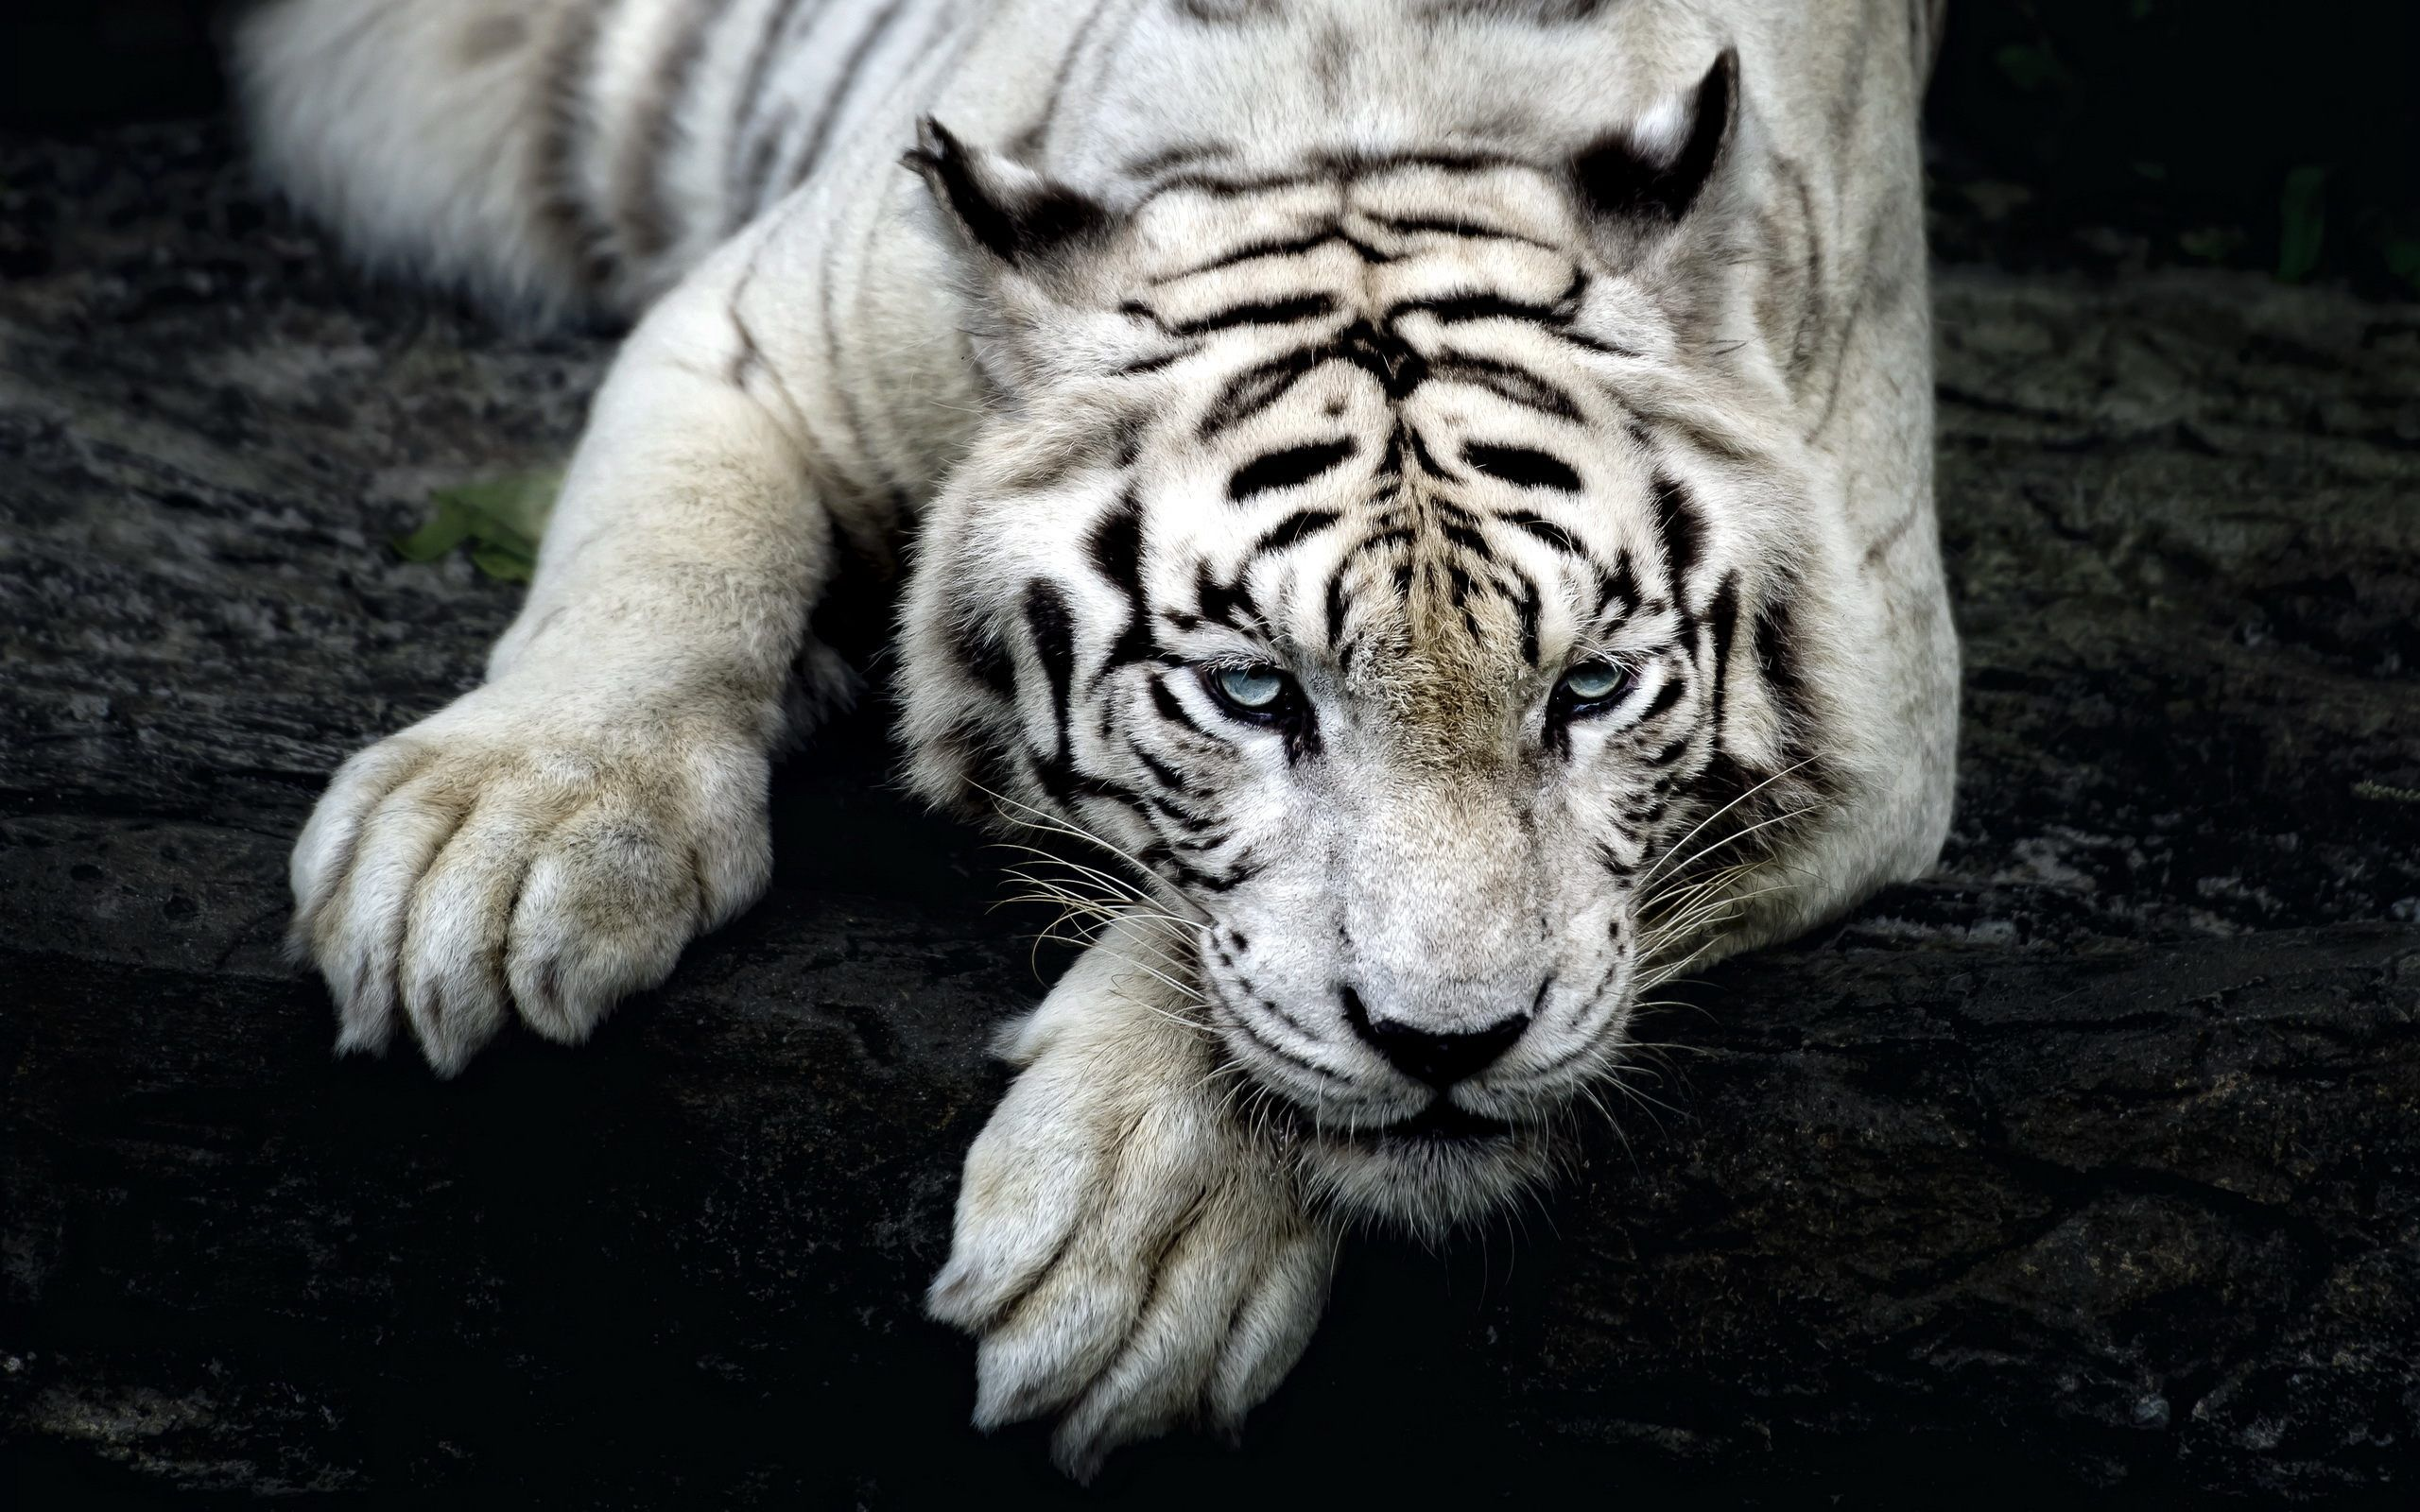 Download White Tiger Wallpapers 1080p For Widescreen Wallpaper Subwallpaper Pet Tiger Tiger Wallpaper White Tiger